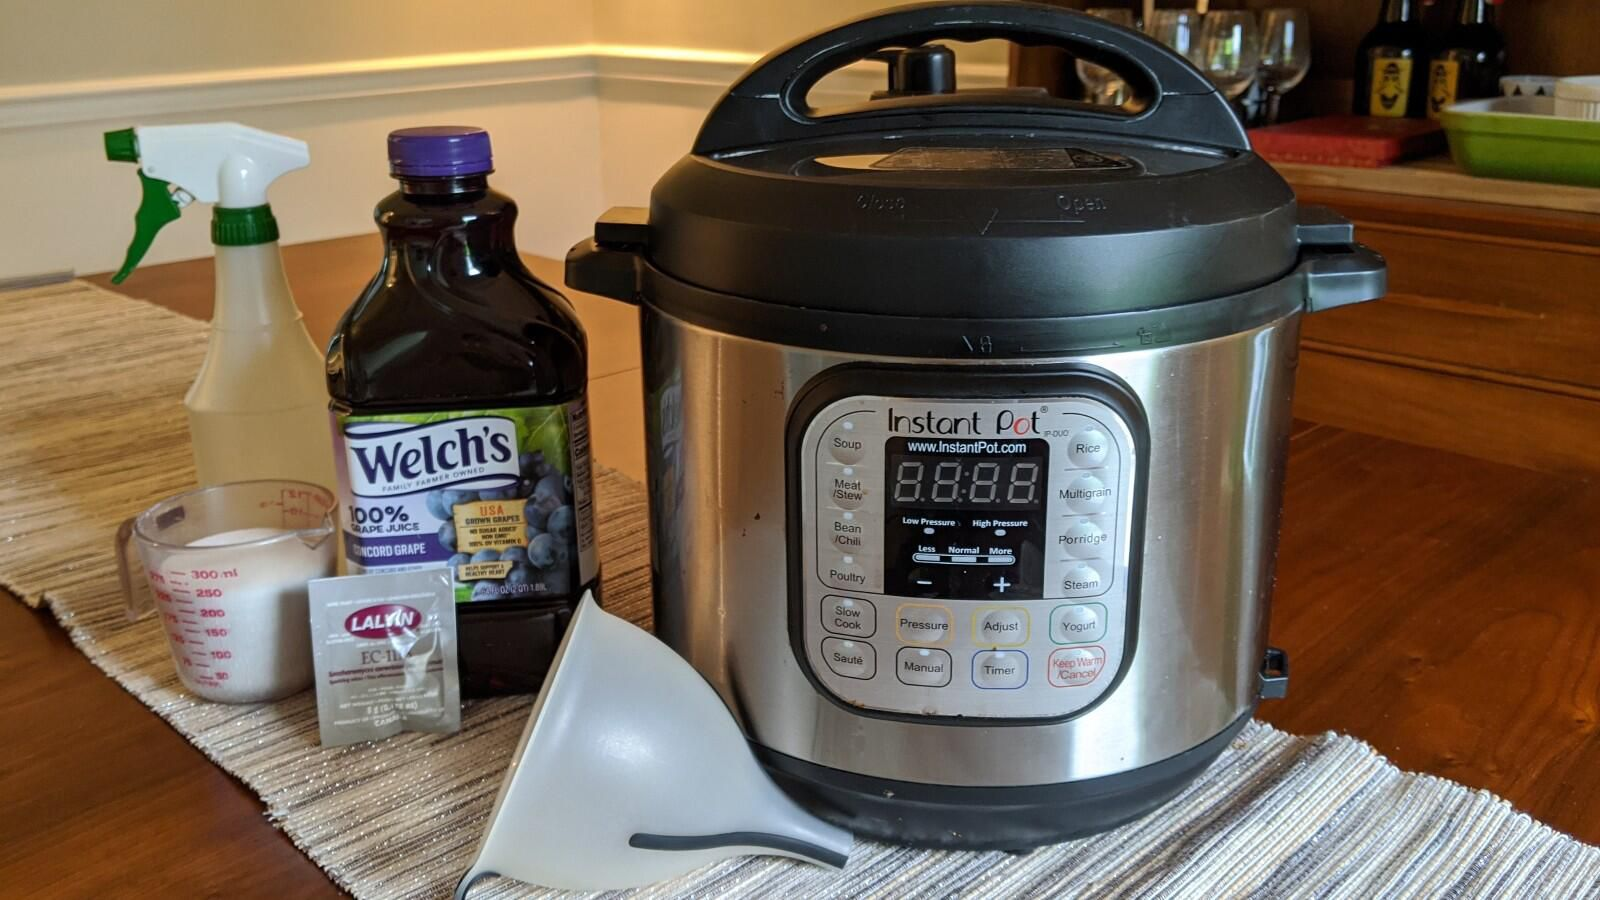 How to make wine in your Instant Pot: A step-by-step guide to brewing at home手把手教你用电压力锅自制葡萄酒,在家就能做